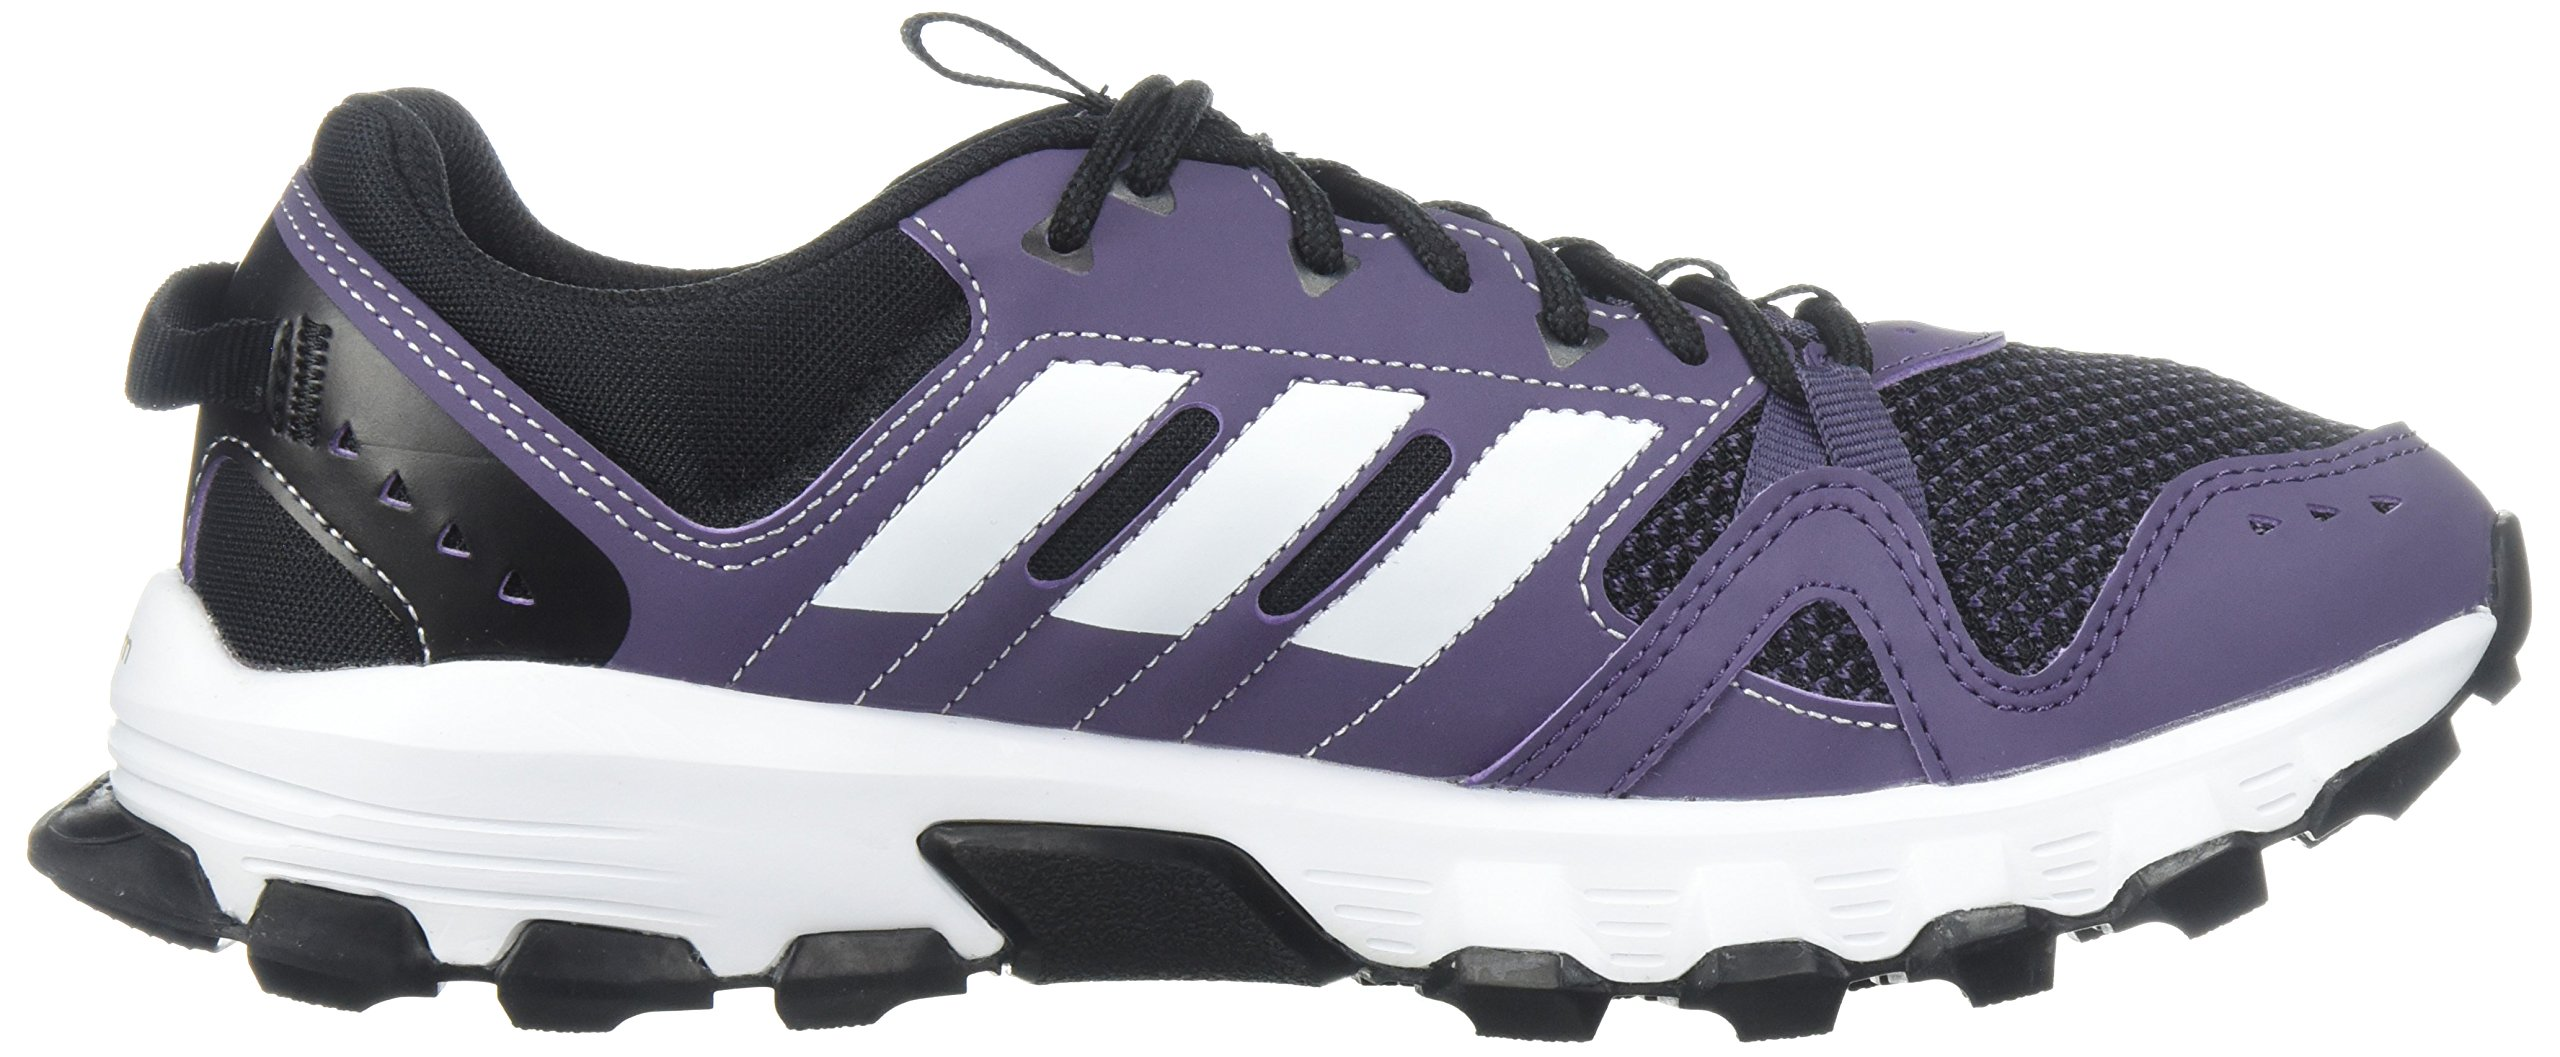 adidas Women's Rockadia w Trail Running Shoe, Trace Purple/White/Core Black, 7 M US by adidas (Image #7)